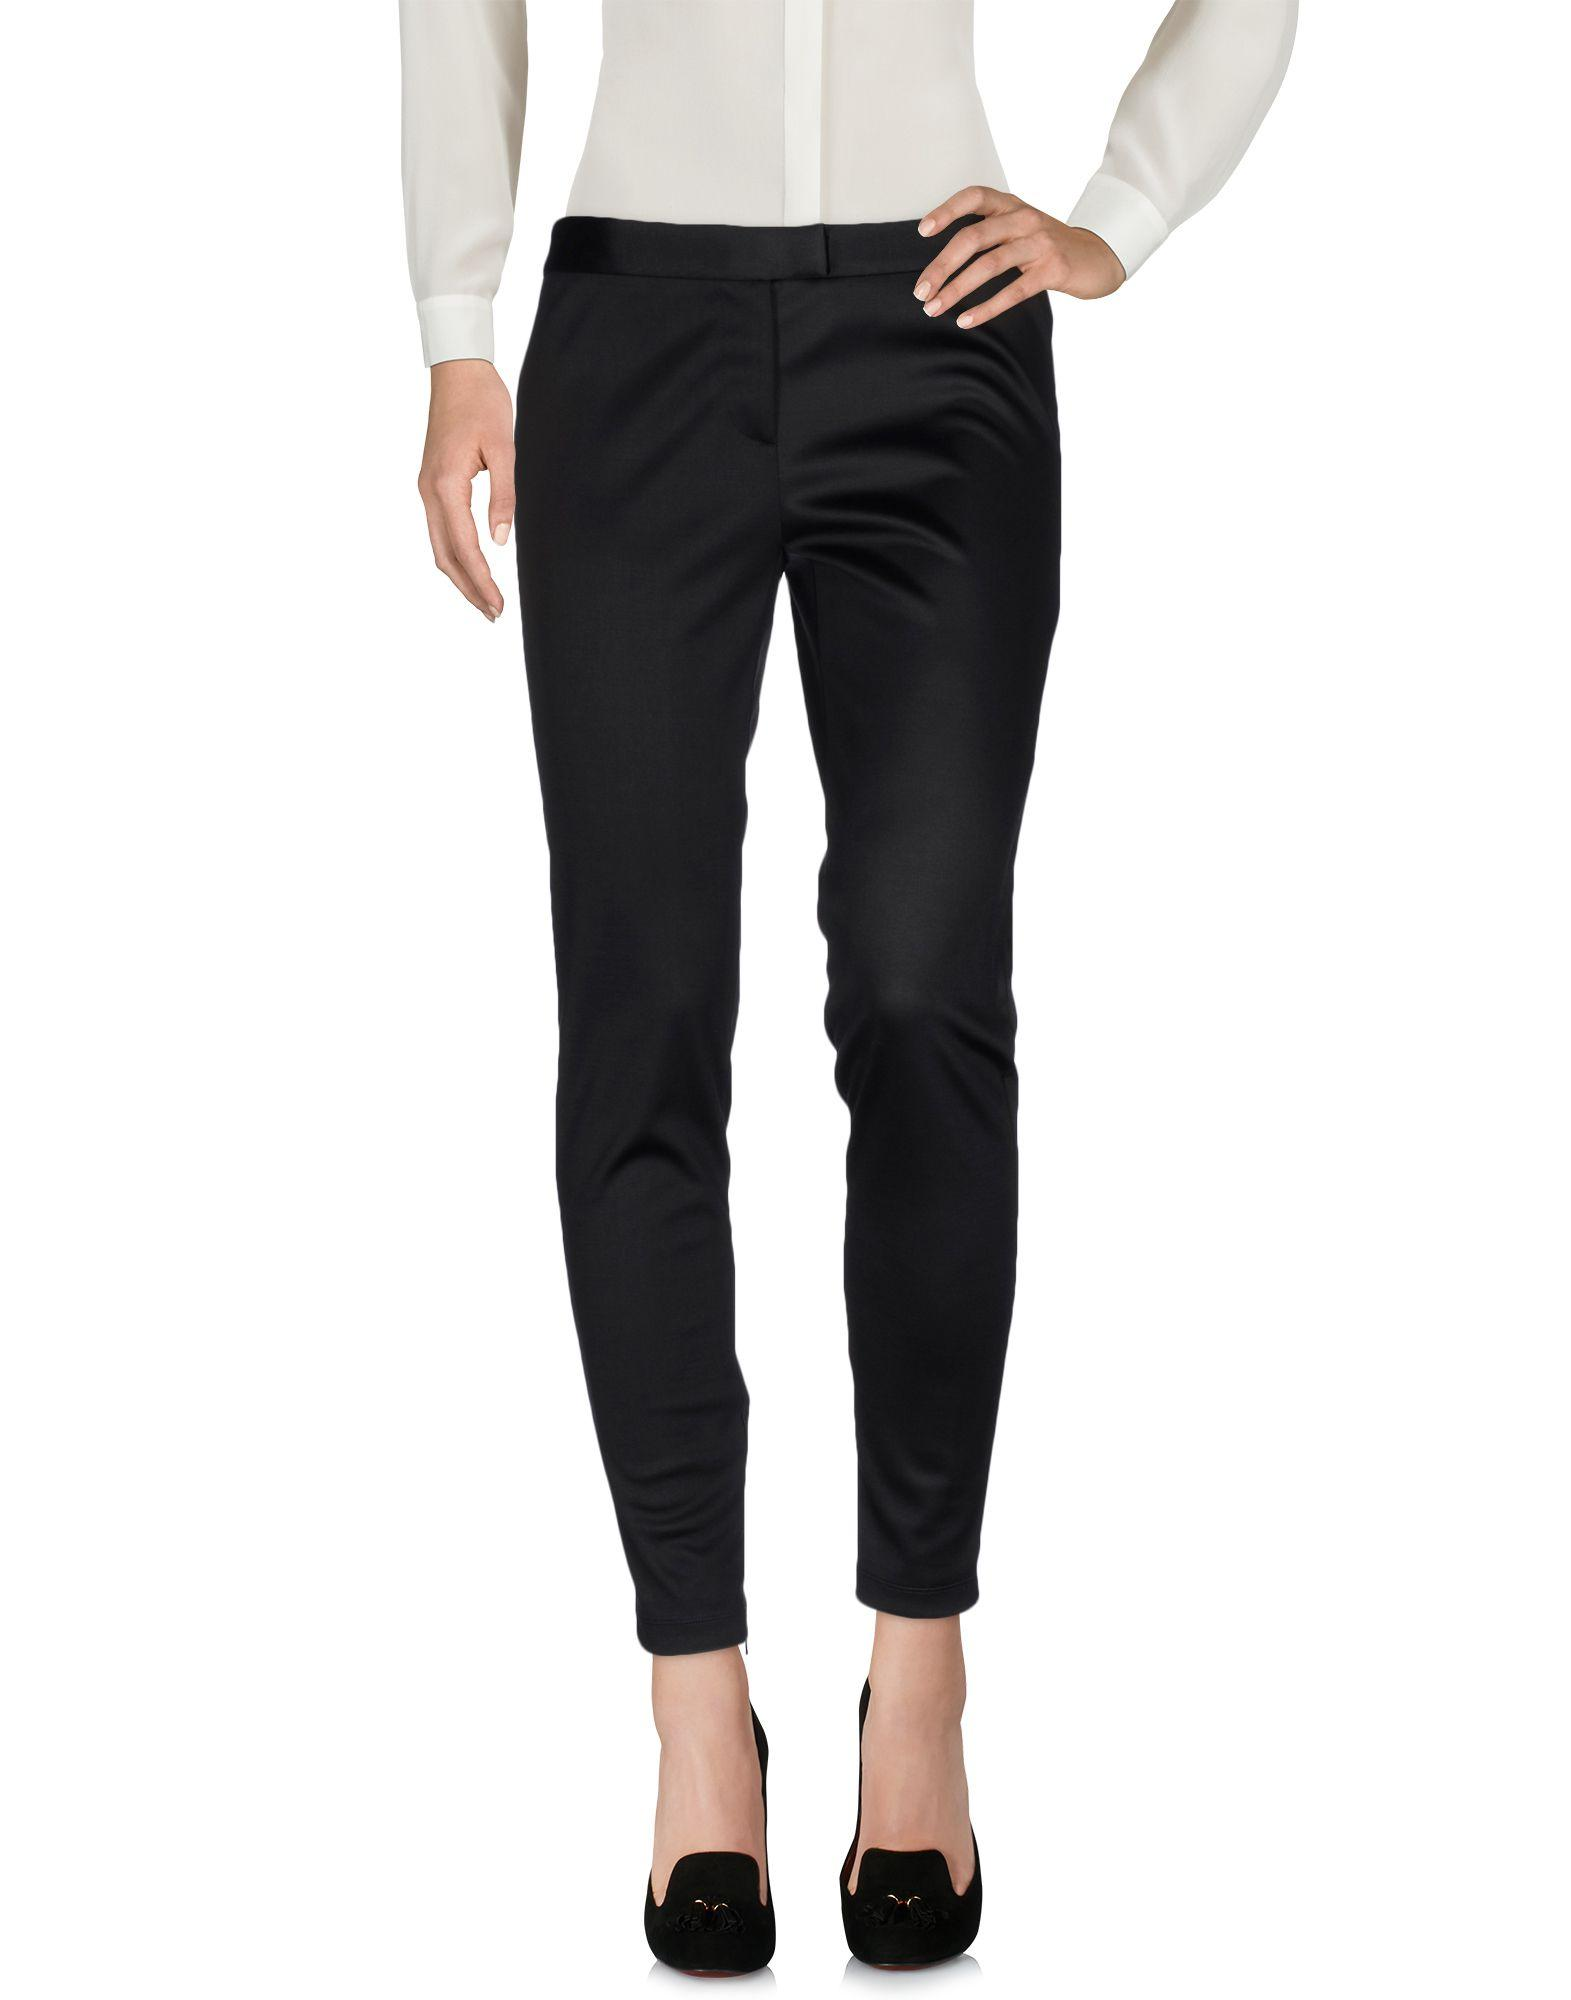 Moschino Cheap And Chic Casual Pants In Black